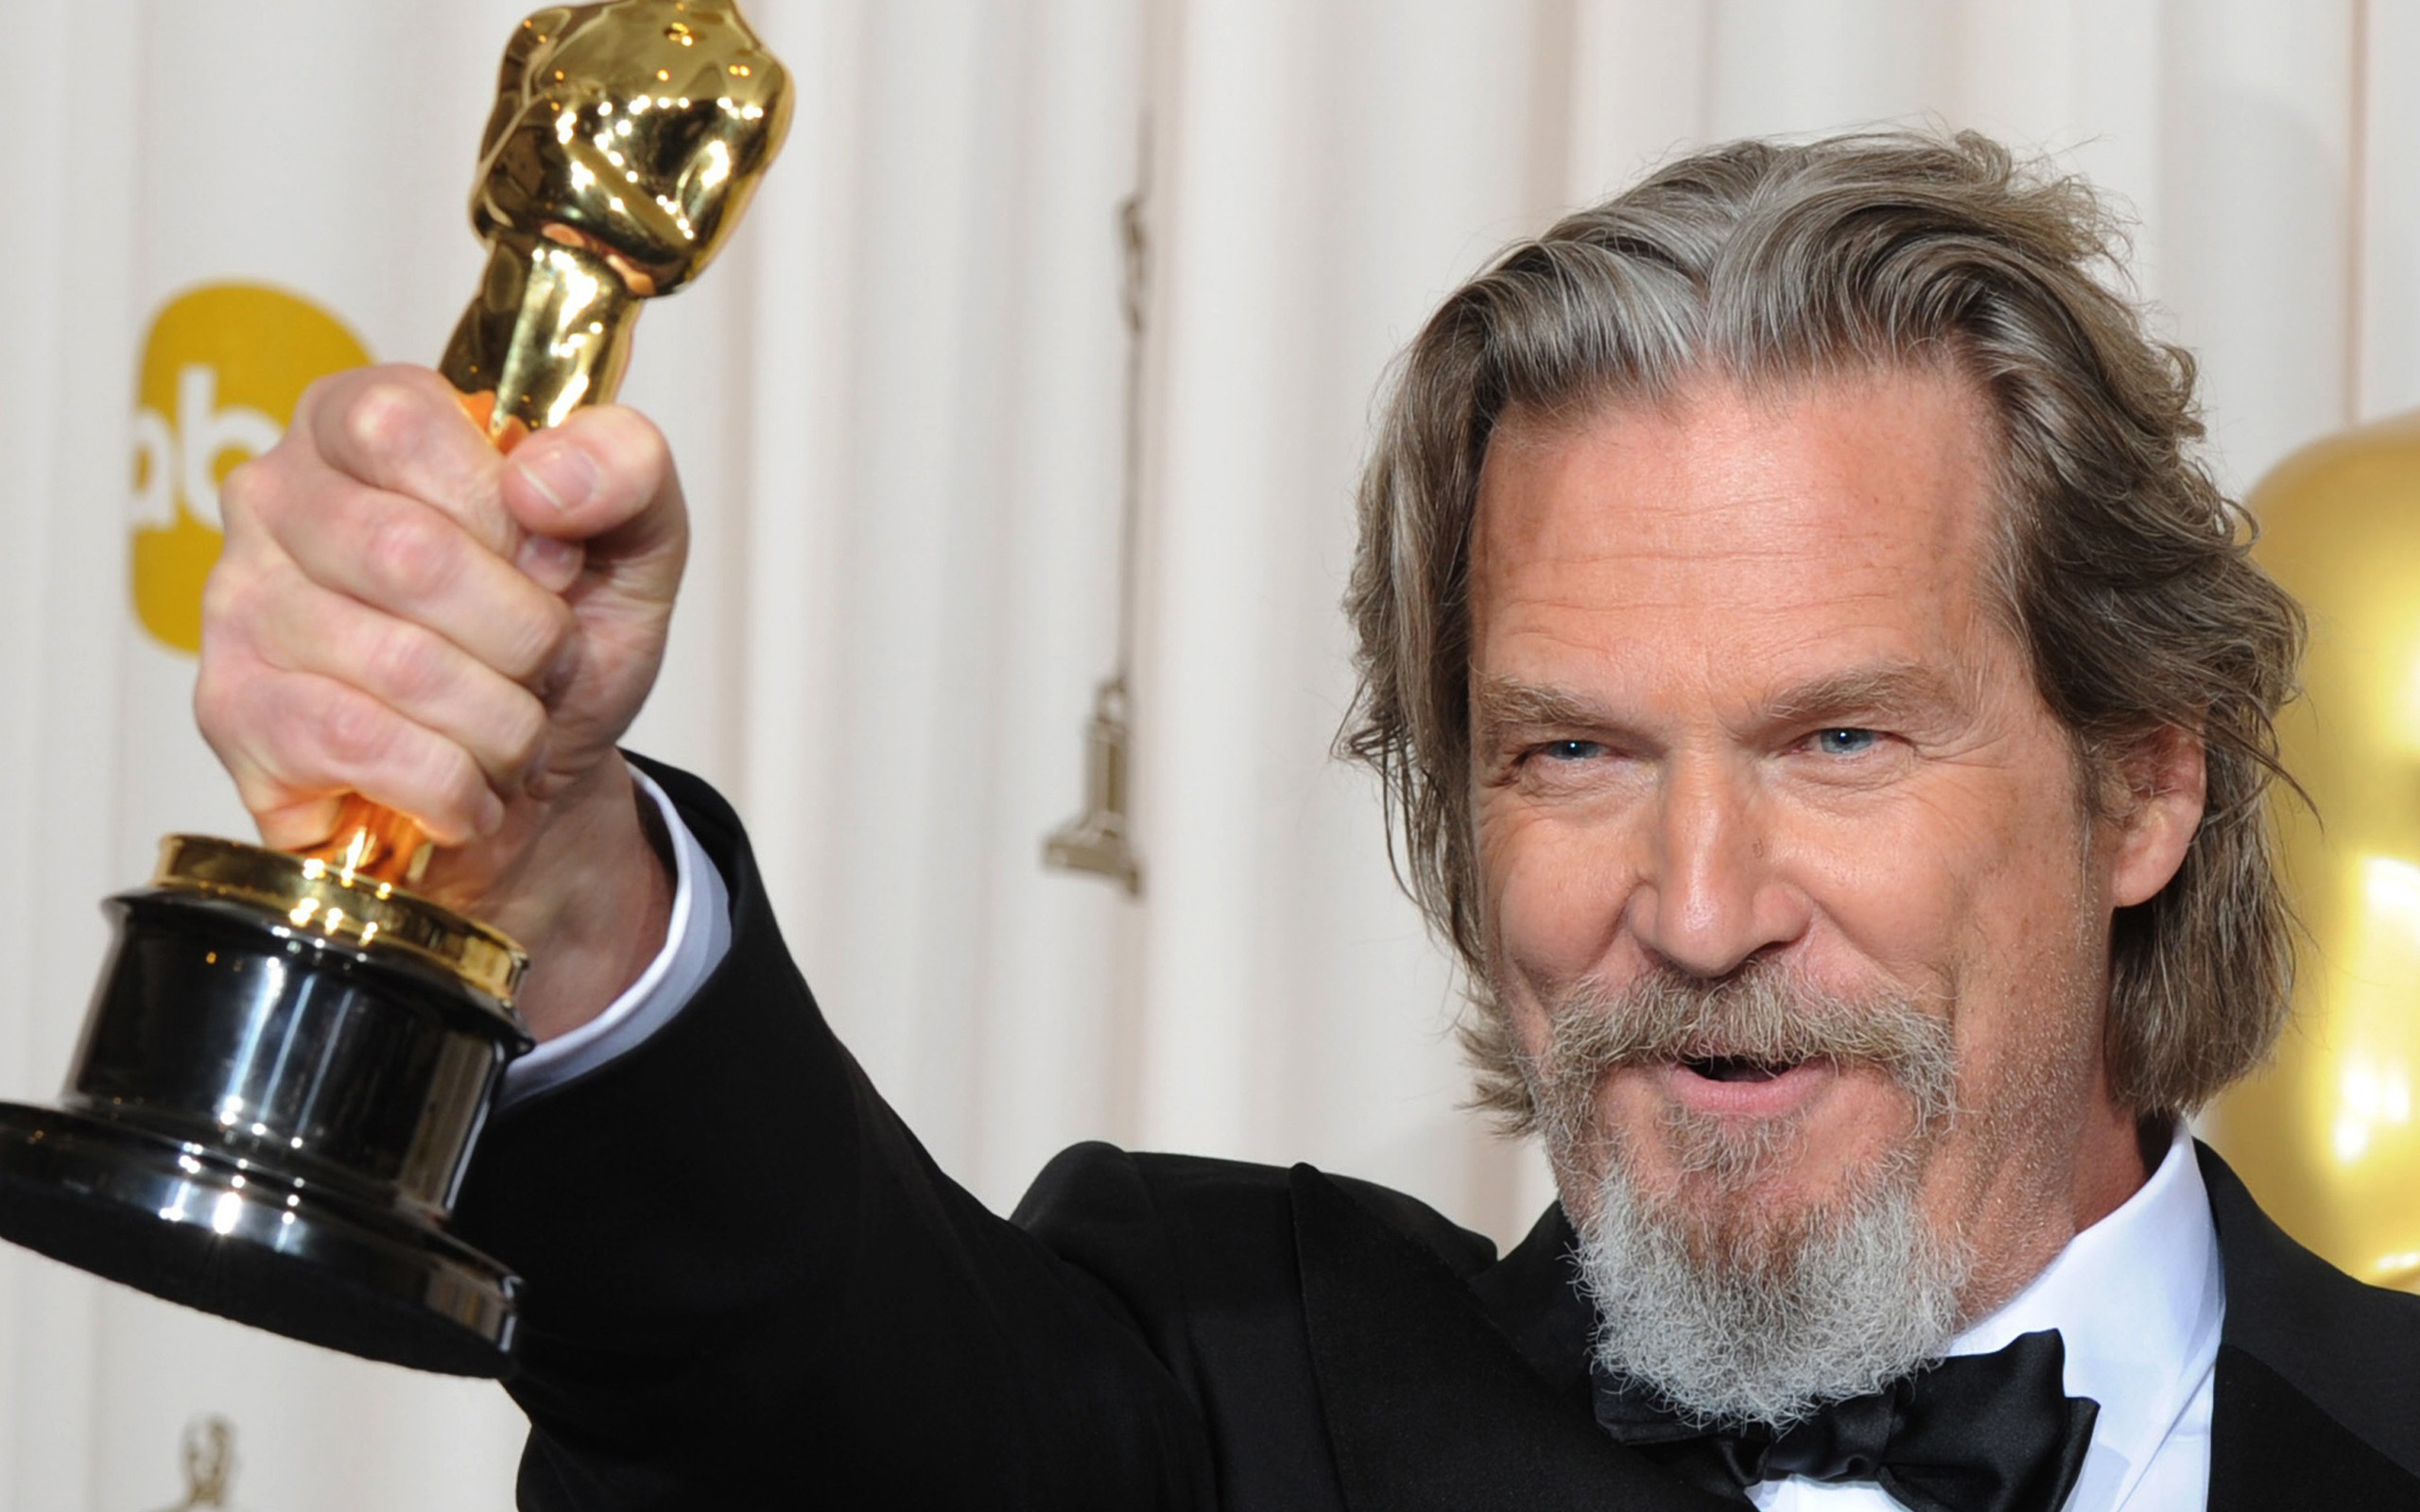 Jeff Bridges HD Wallpaper Background Image 2560x1600 ID 2560x1600